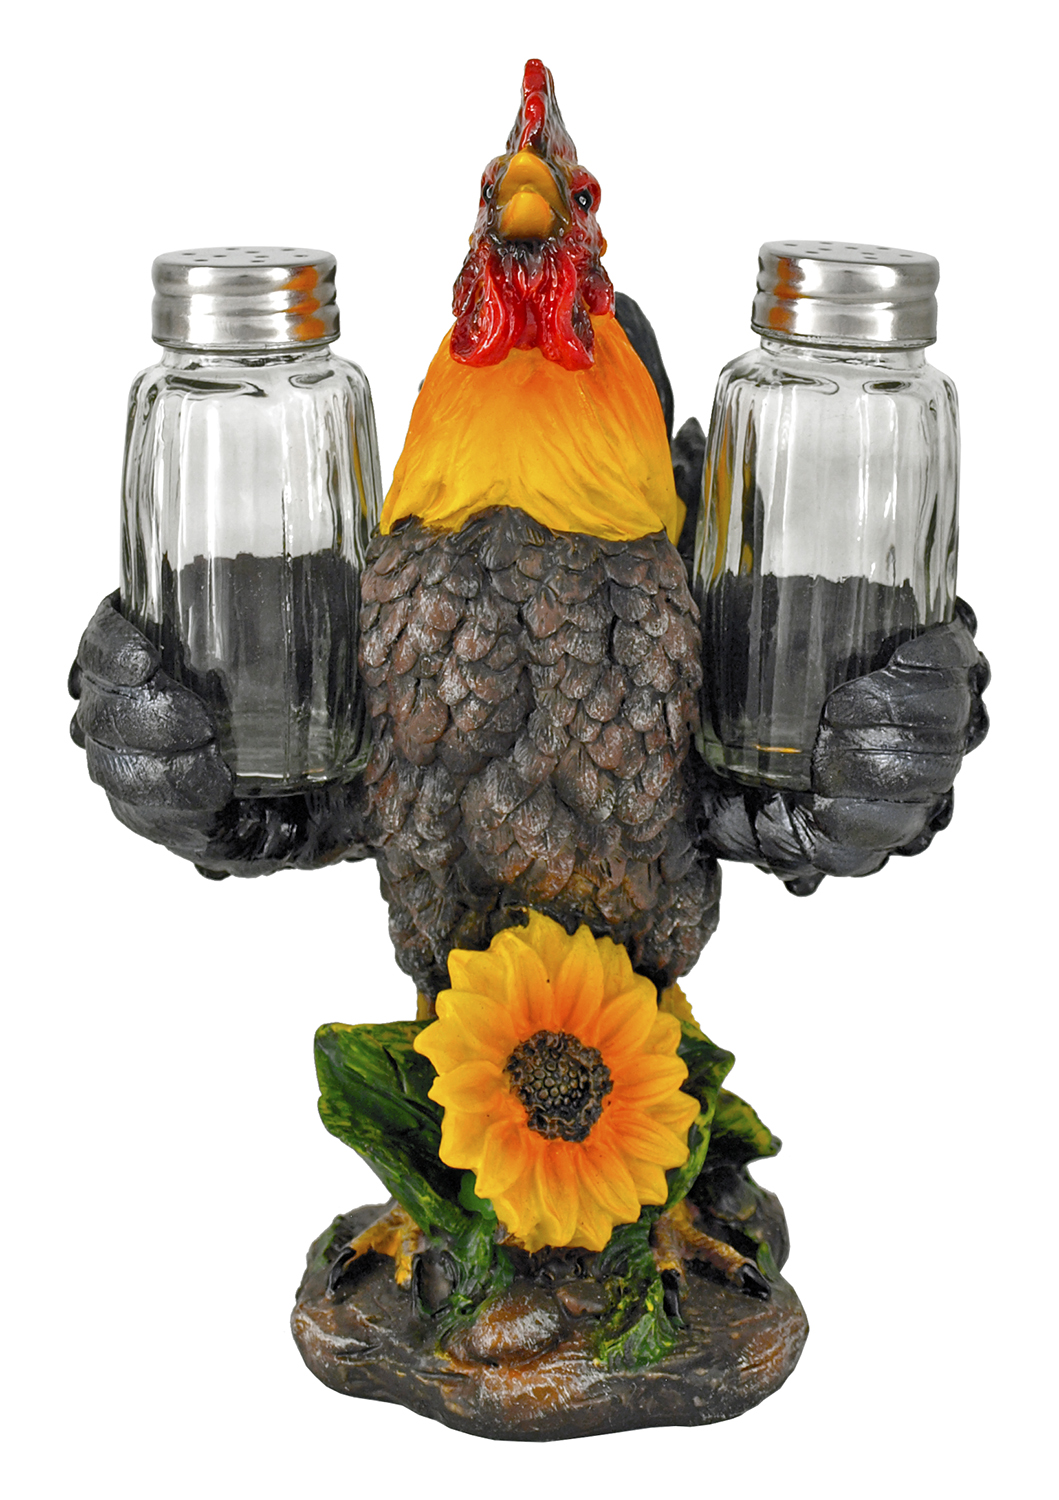 Rooster Salt & Pepper Shaker